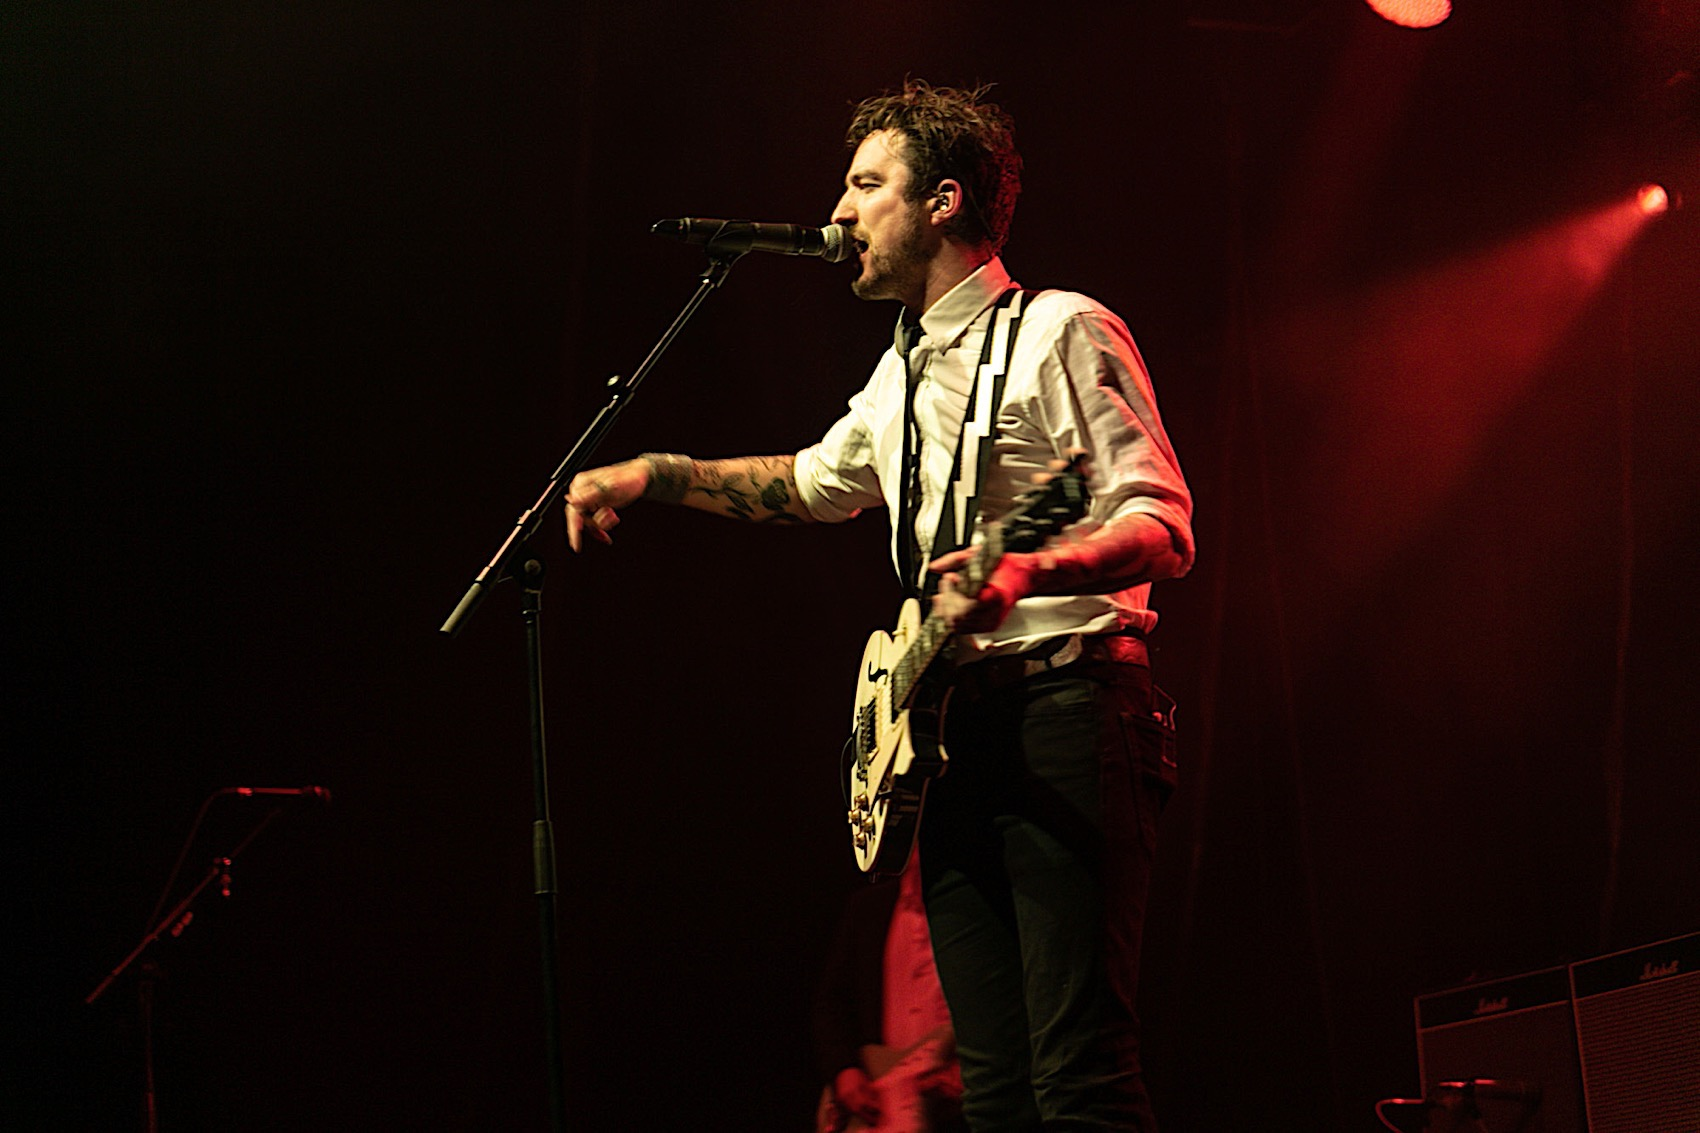 Frank Turner & The Sleeping Souls, Berlin, 22.11.2018 - Foto: Rene Ratlos